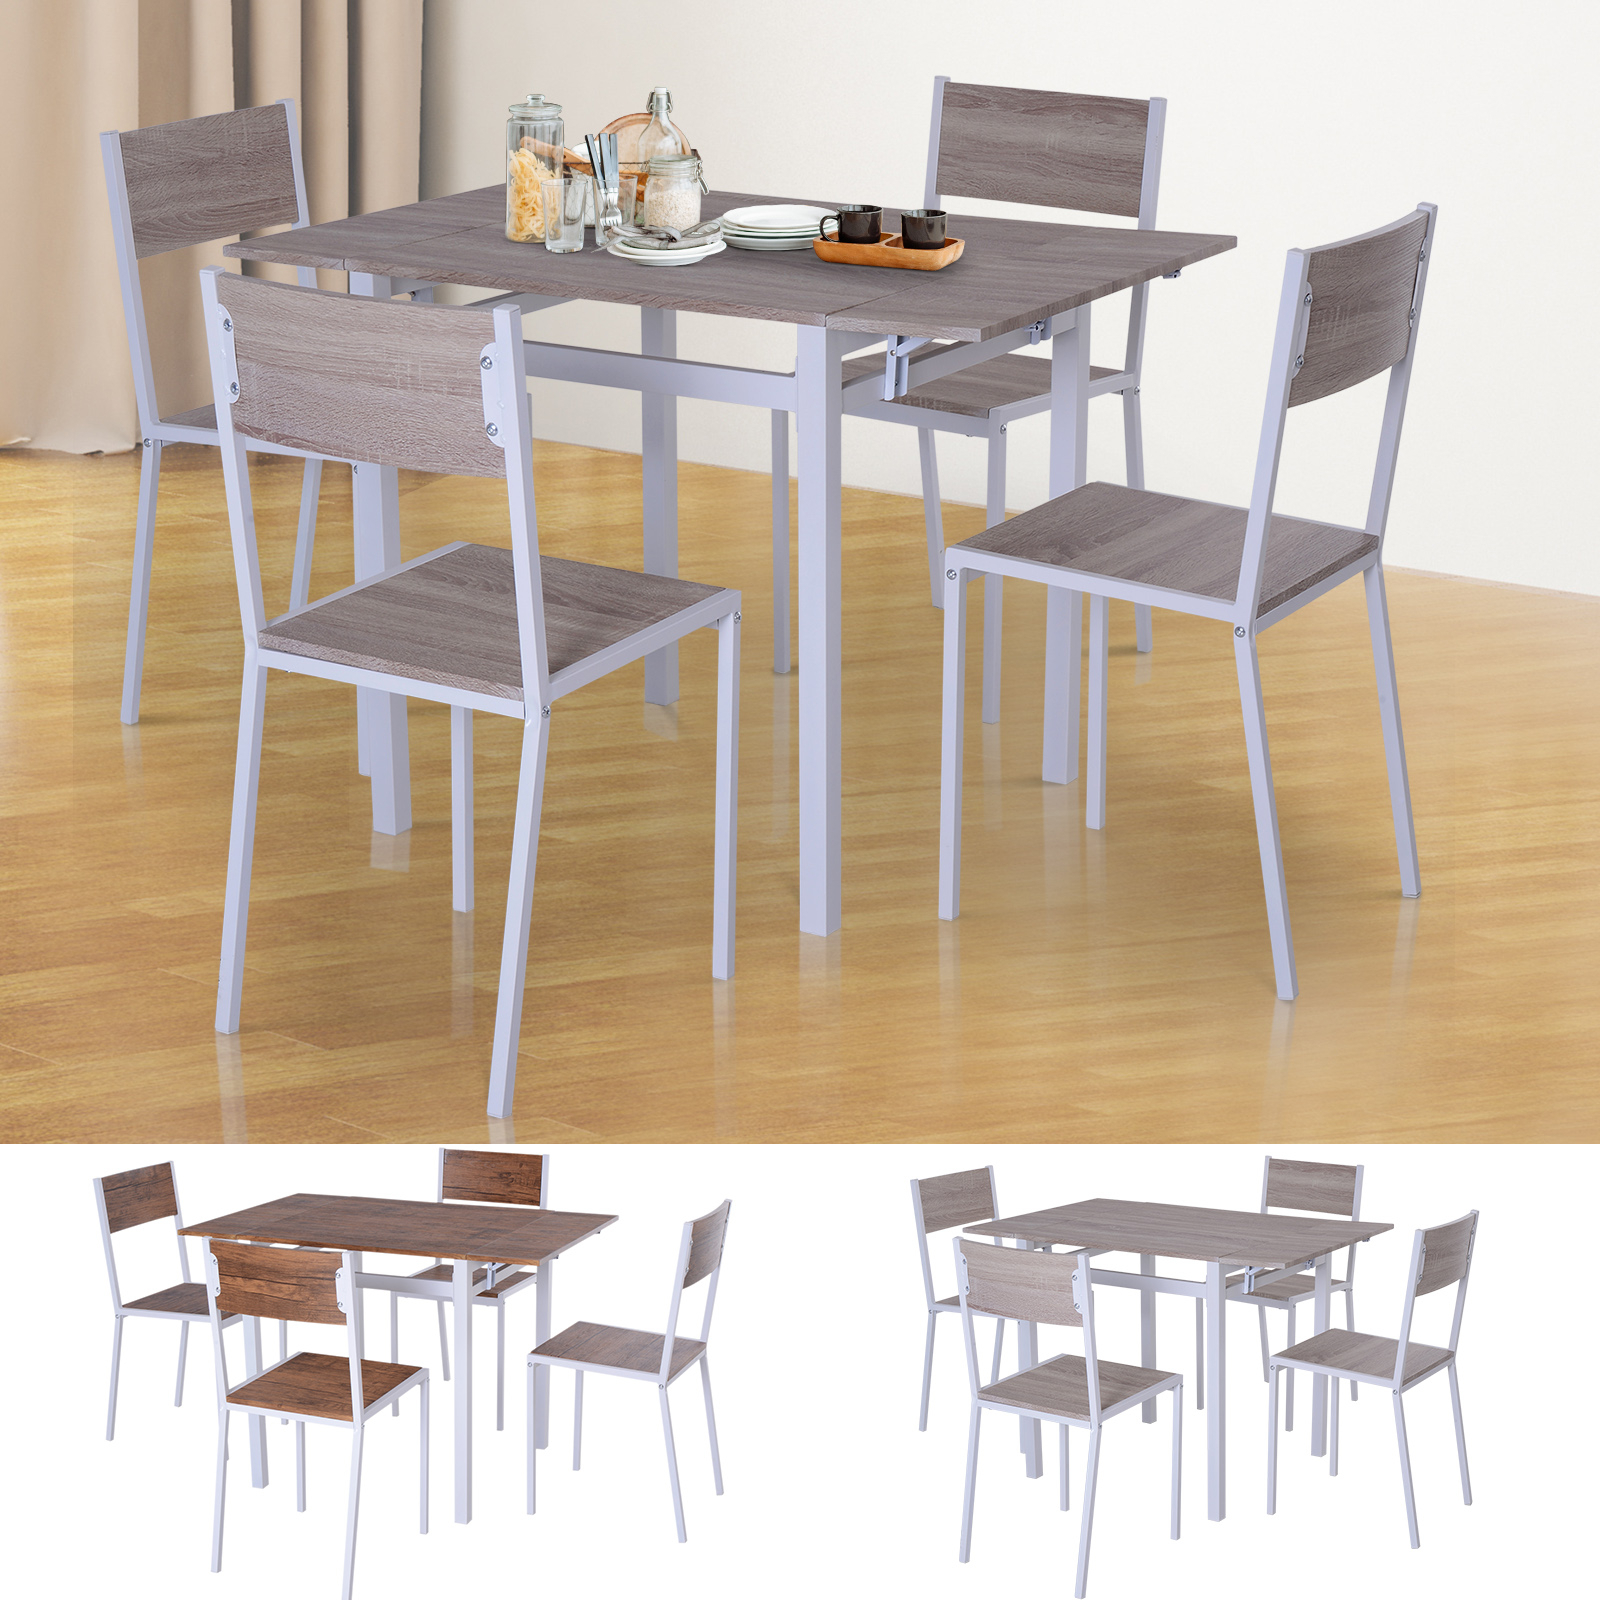 Trendy Details About 5 Pc Extending Drop Leaf Counter Height Dining Set Table & 4  Chairs Kitchen Throughout Wood Kitchen Dining Tables With Removable Center Leaf (Gallery 23 of 30)